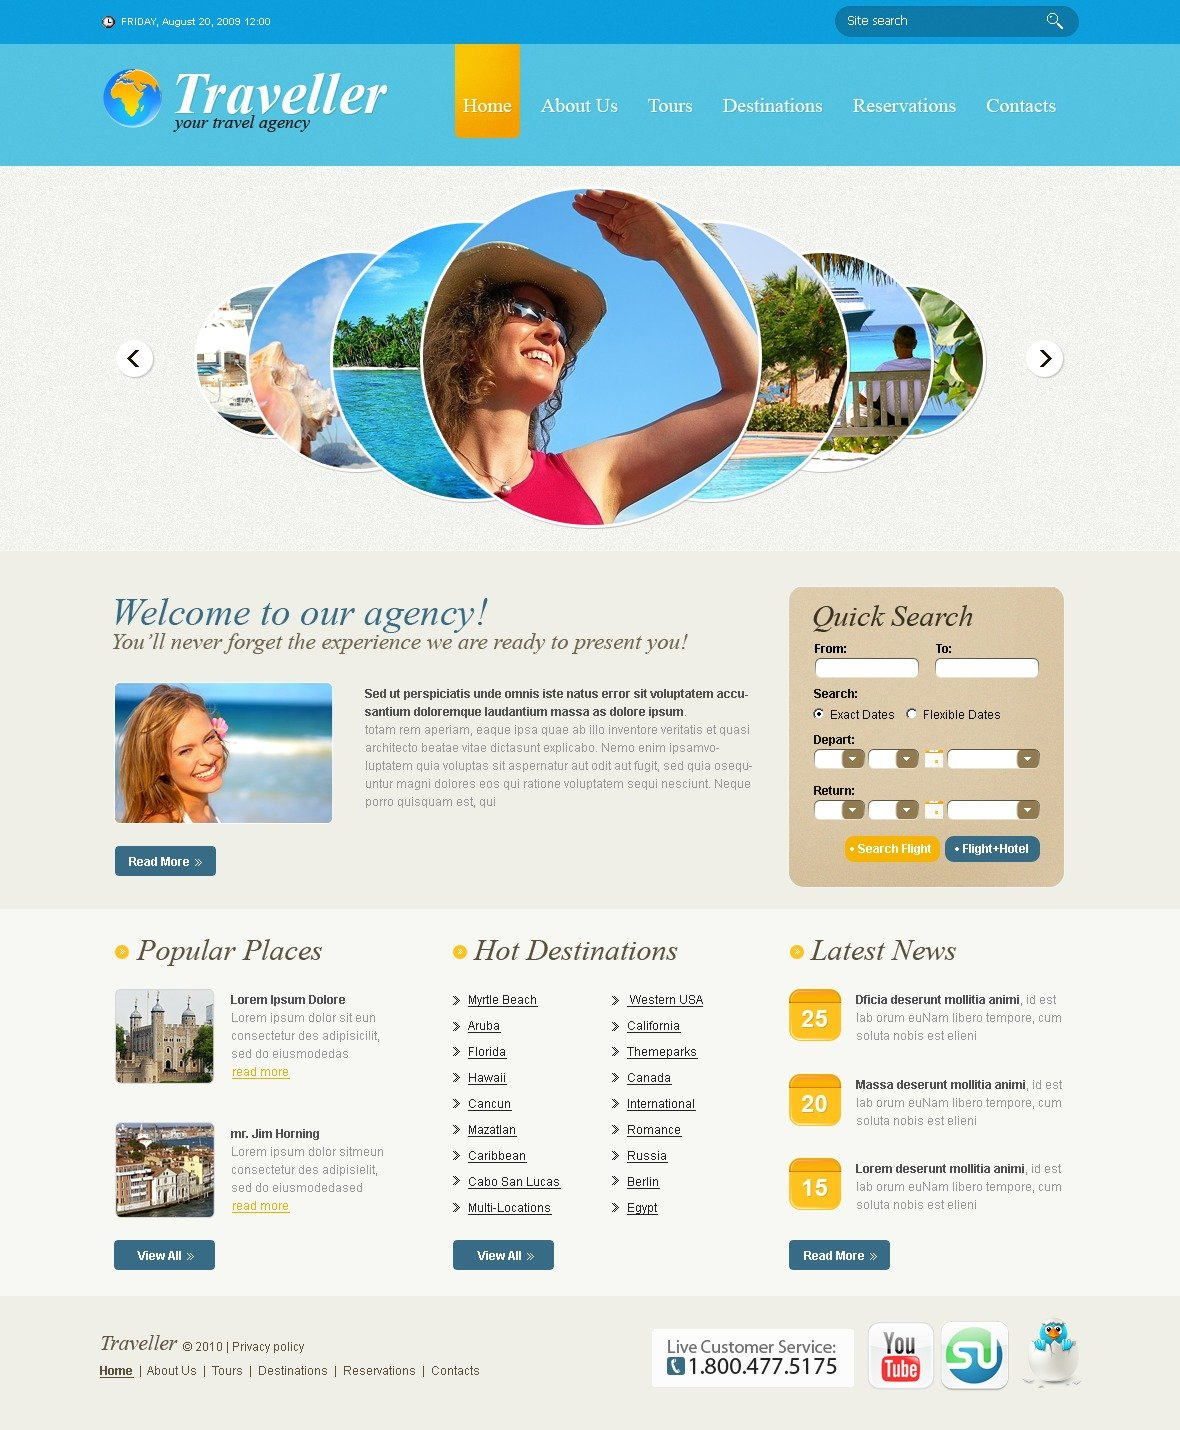 The Travel Agency PSD Design 54375, one of the best PSD templates of its kind (travel, flash 8, wide), also known as travel agency PSD template, compass PSD template, tour country PSD template, resort PSD template, spa PSD template, flight hotel PSD template, car PSD template, rental PSD template, cruise PSD template, sights PSD template, reservation PSD template, location PSD template, authorization PSD template, ticket PSD template, guide PSD template, beach PSD template, sea PSD template, relaxation PSD template, recreation PSD template, impression PSD template, air PSD template, liner PSD template, traveling PSD template, apartment PSD template, vacation PSD template, rest PSD template, comfort PSD template, destination PSD template, explorat and related with travel agency, compass, tour country, resort, spa, flight hotel, car, rental, cruise, sights, reservation, location, authorization, ticket, guide, beach, sea, relaxation, recreation, impression, air, liner, traveling, apartment, vacation, rest, comfort, destination, explorat, etc.